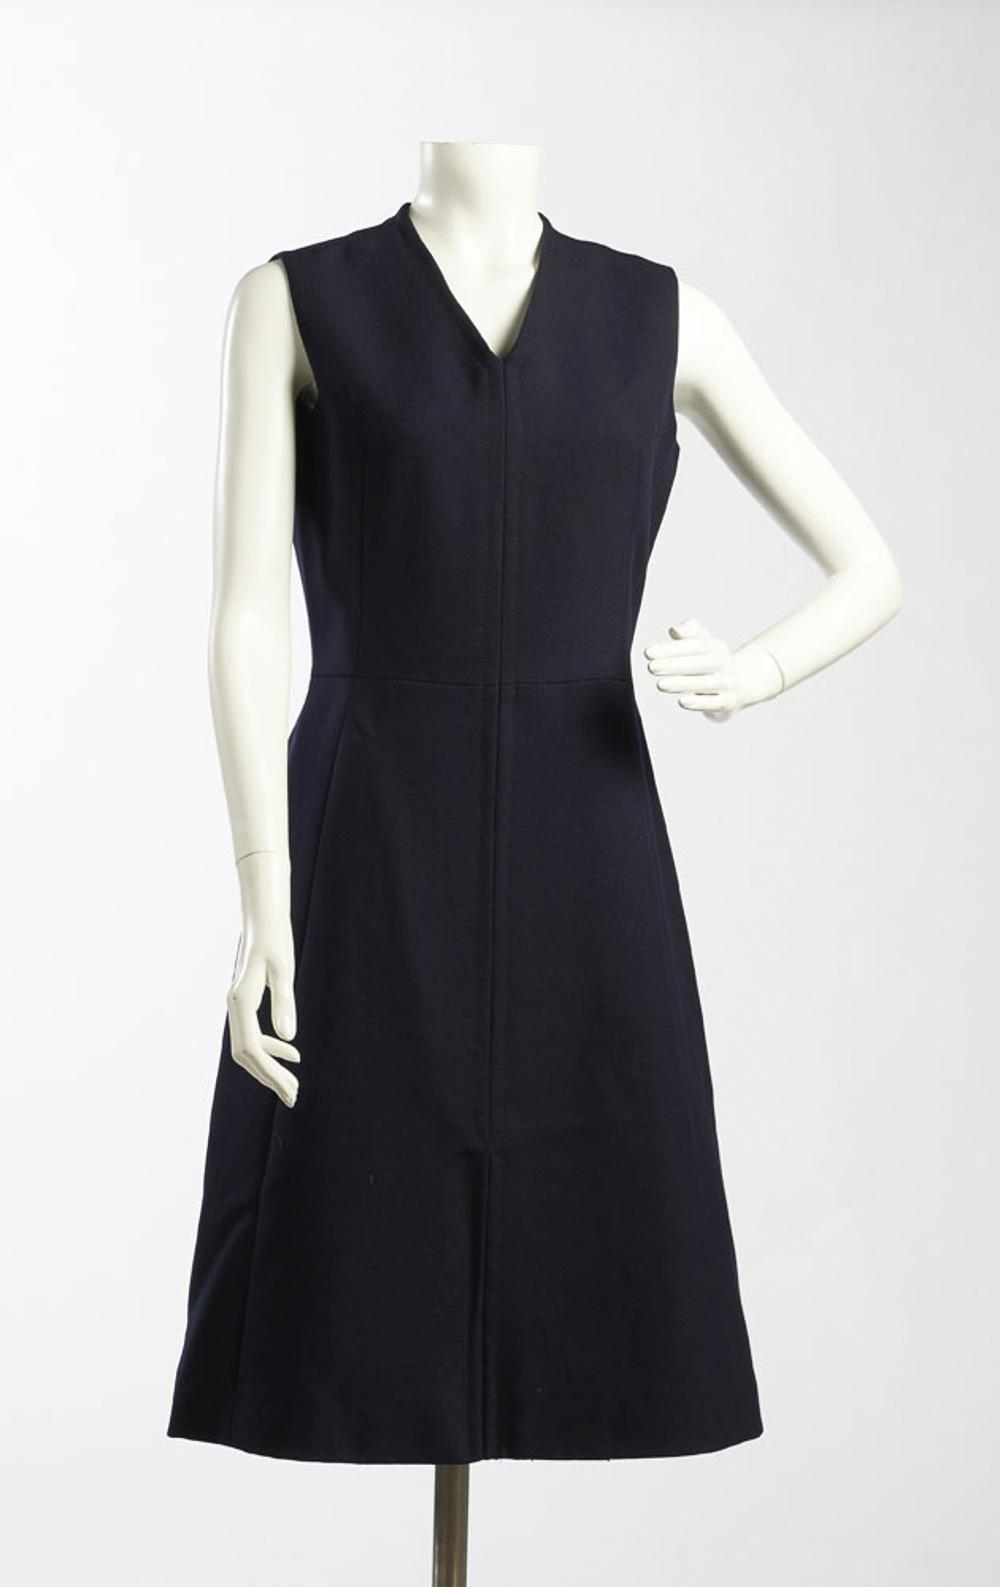 Sleeveless dress in blue lined fabric